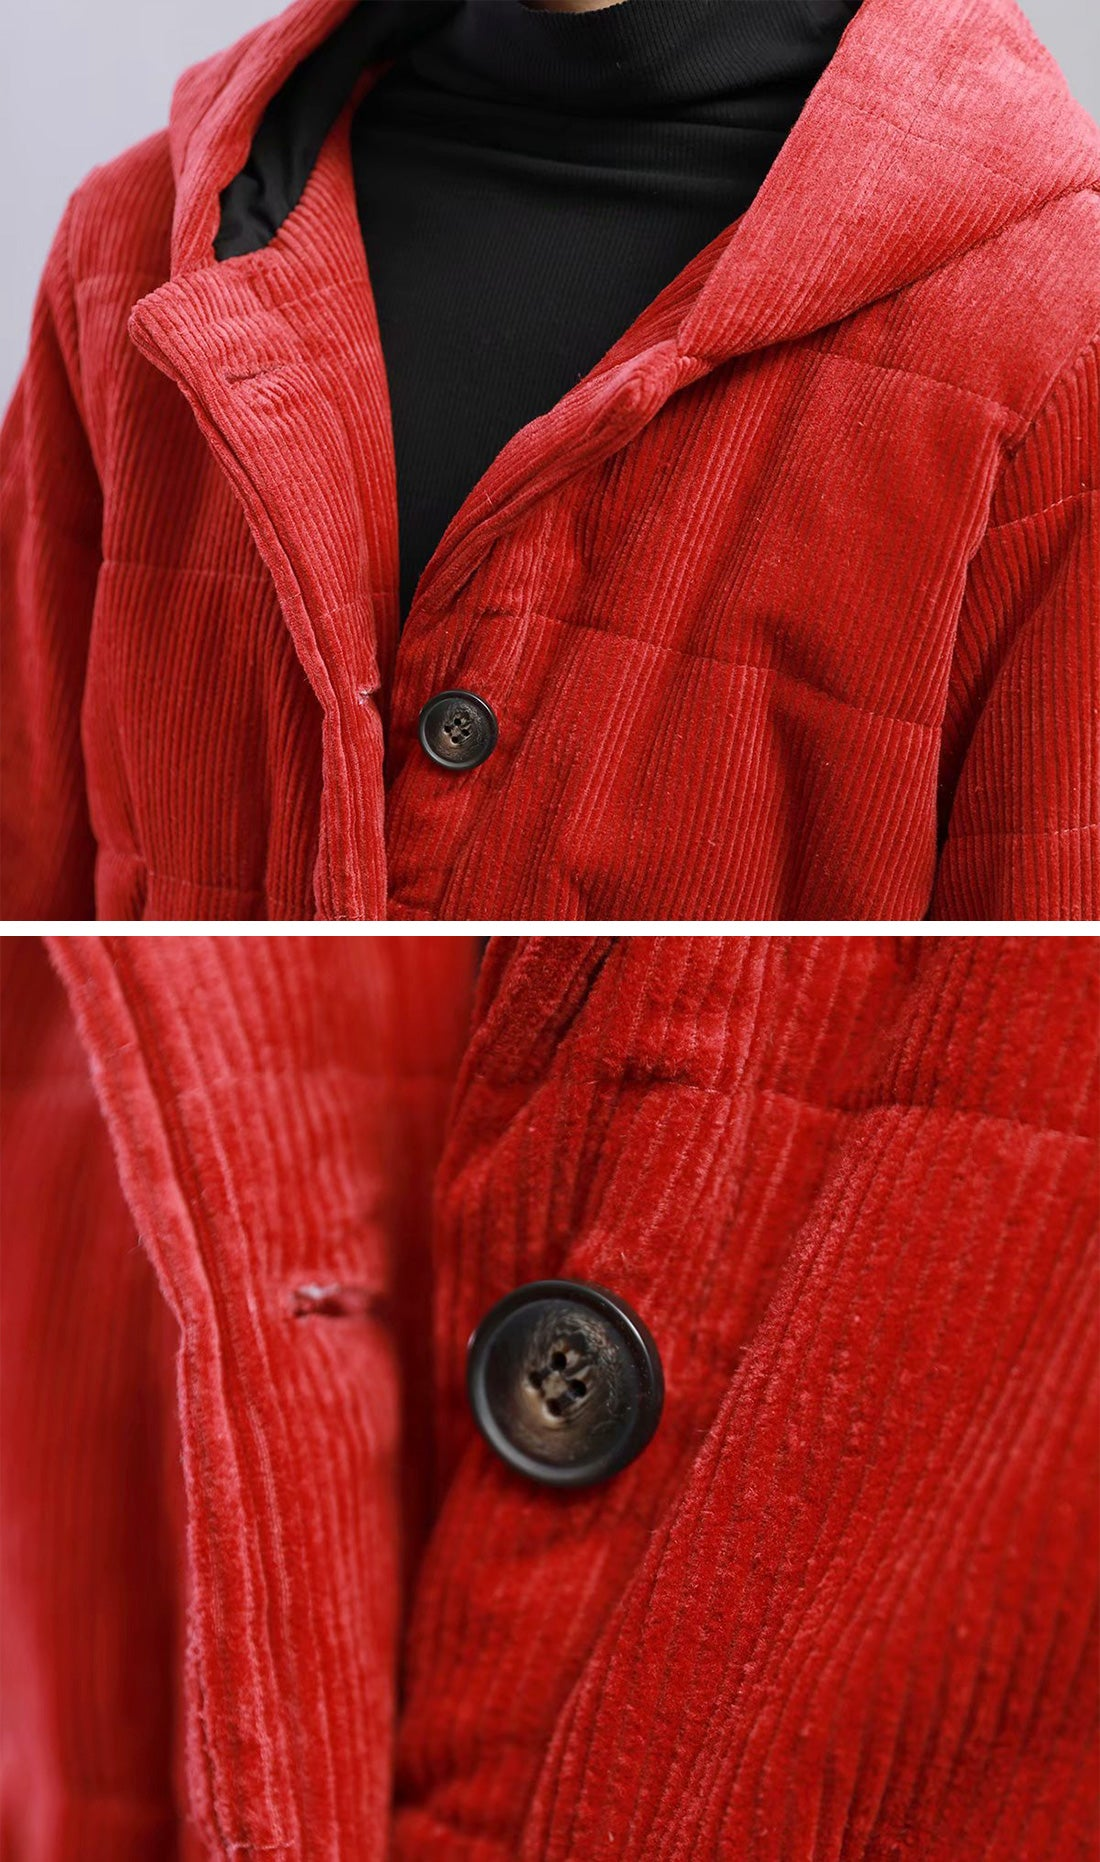 Bad At Love Padded Cotton & Curduroy Coat Details 1